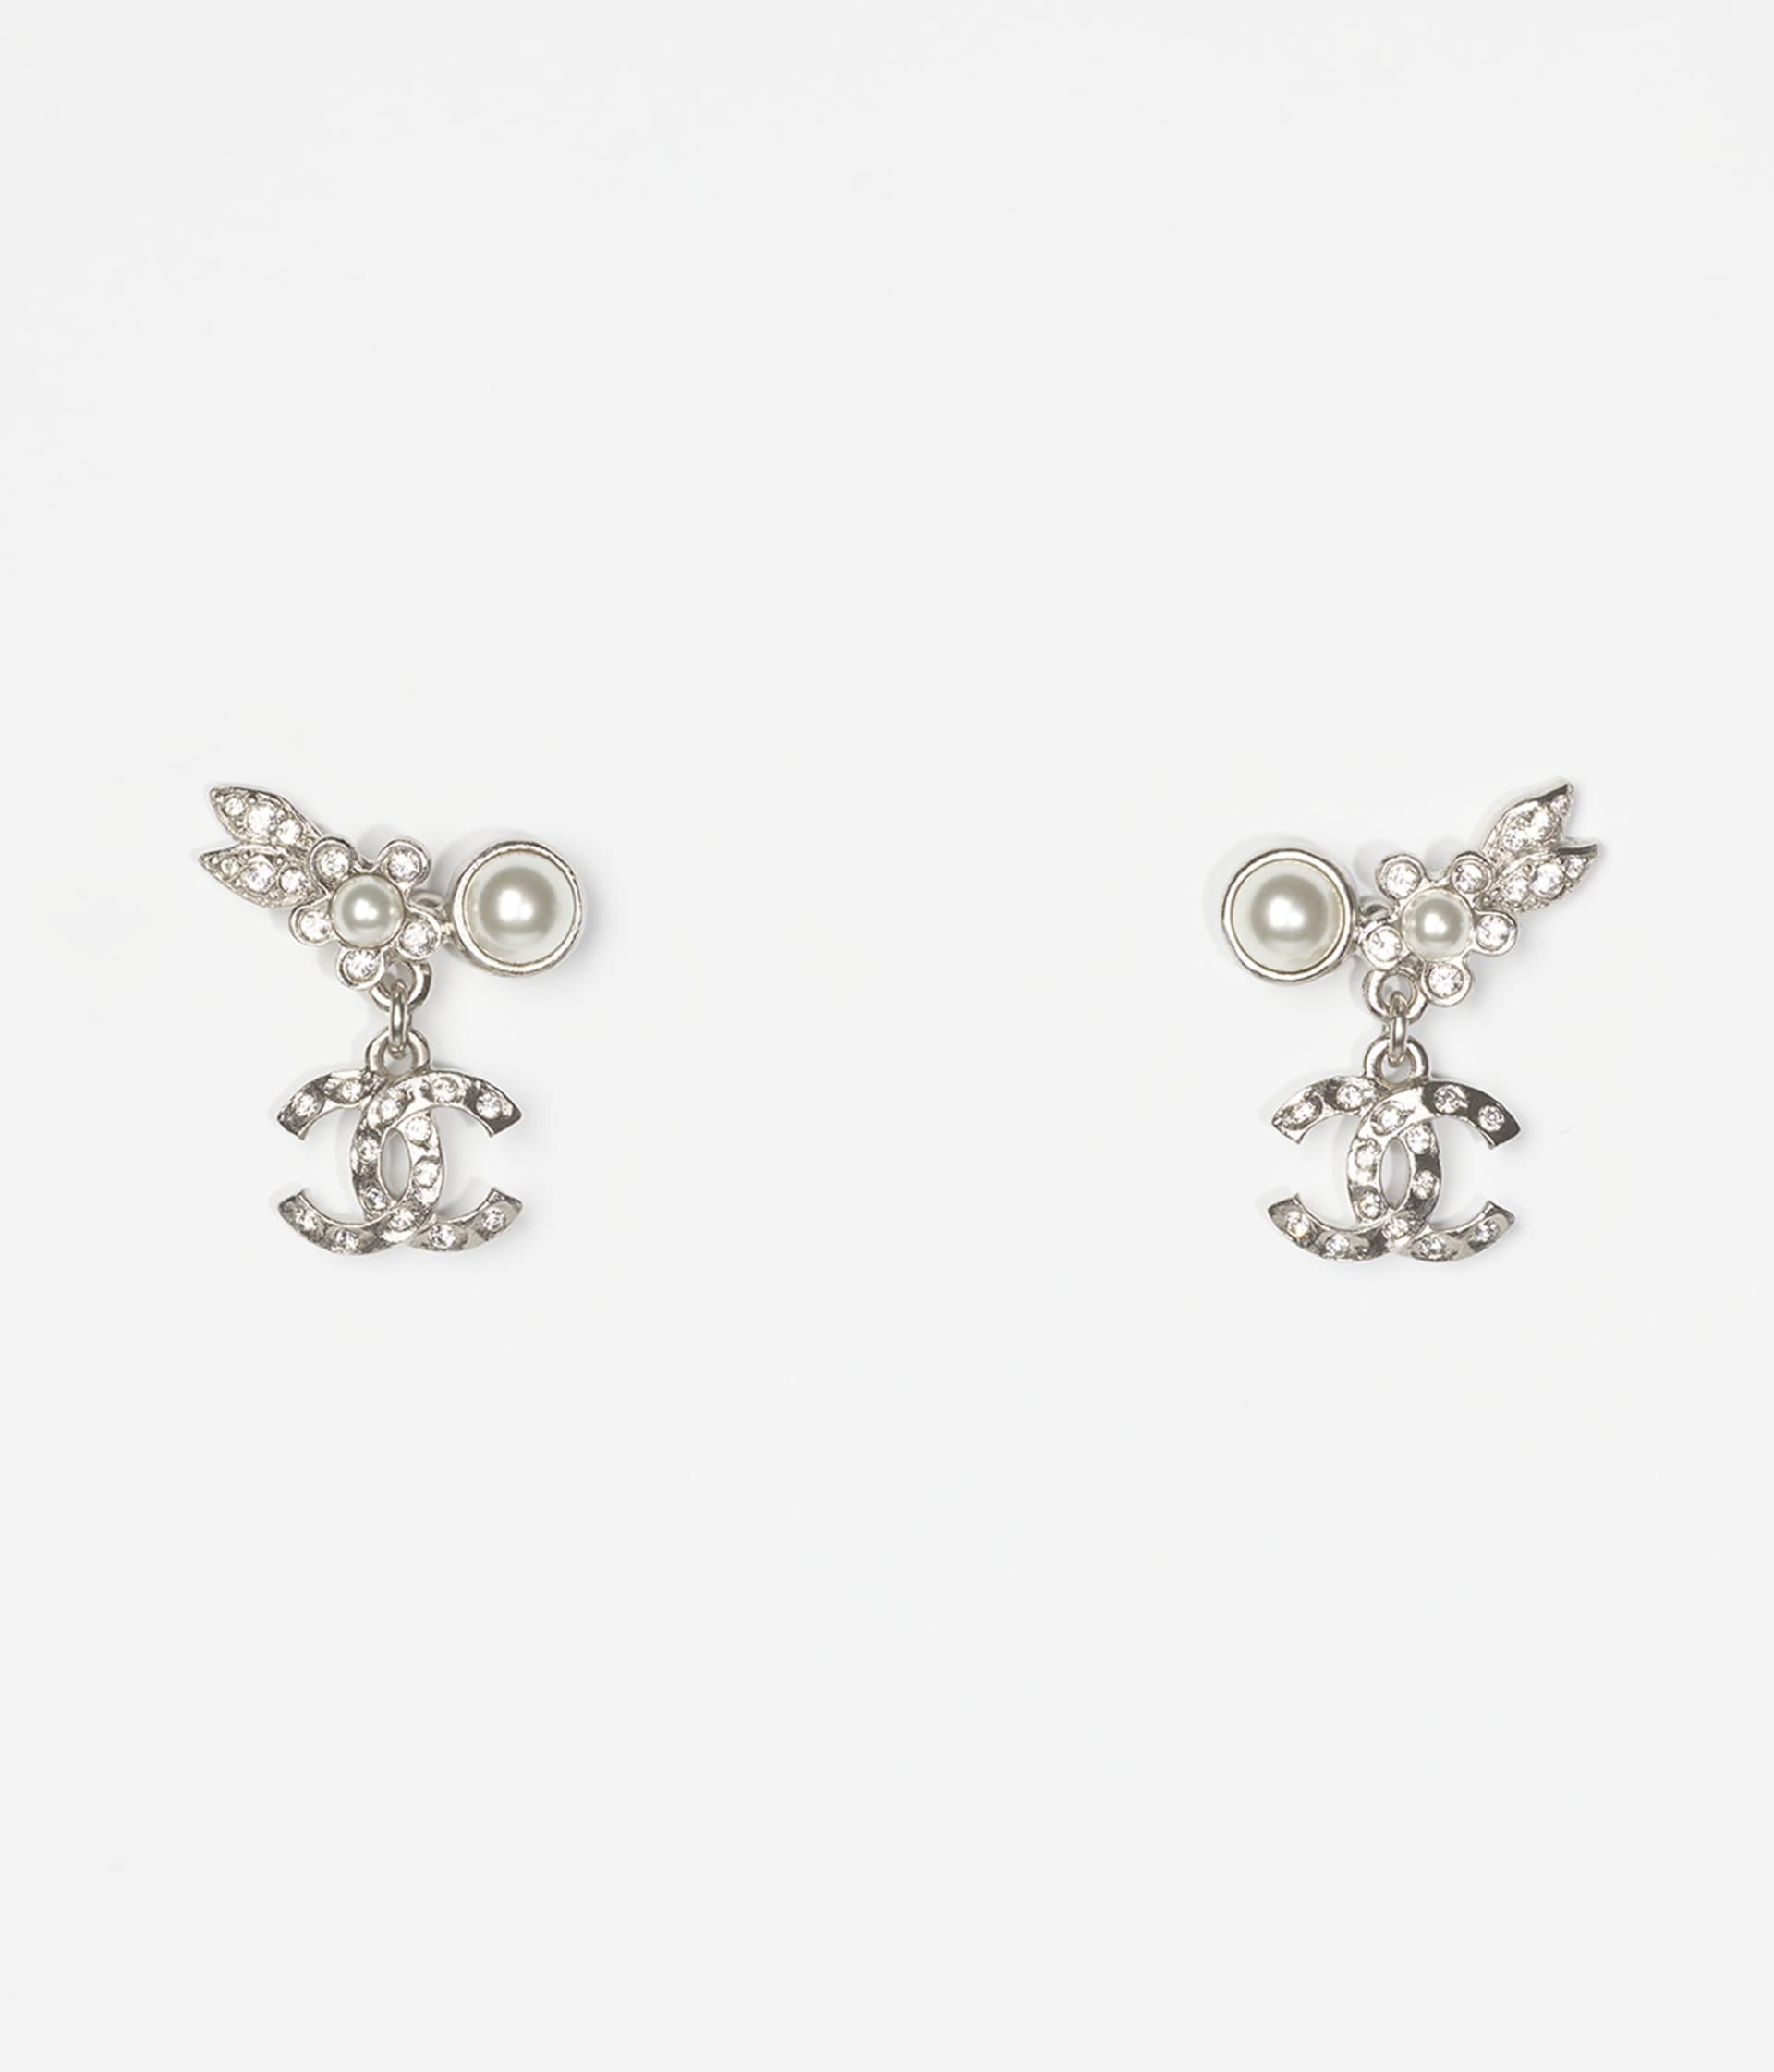 image 1 - Earrings - Metal, Glass Pearls & Strass - Silver, Pearly White & Crystal